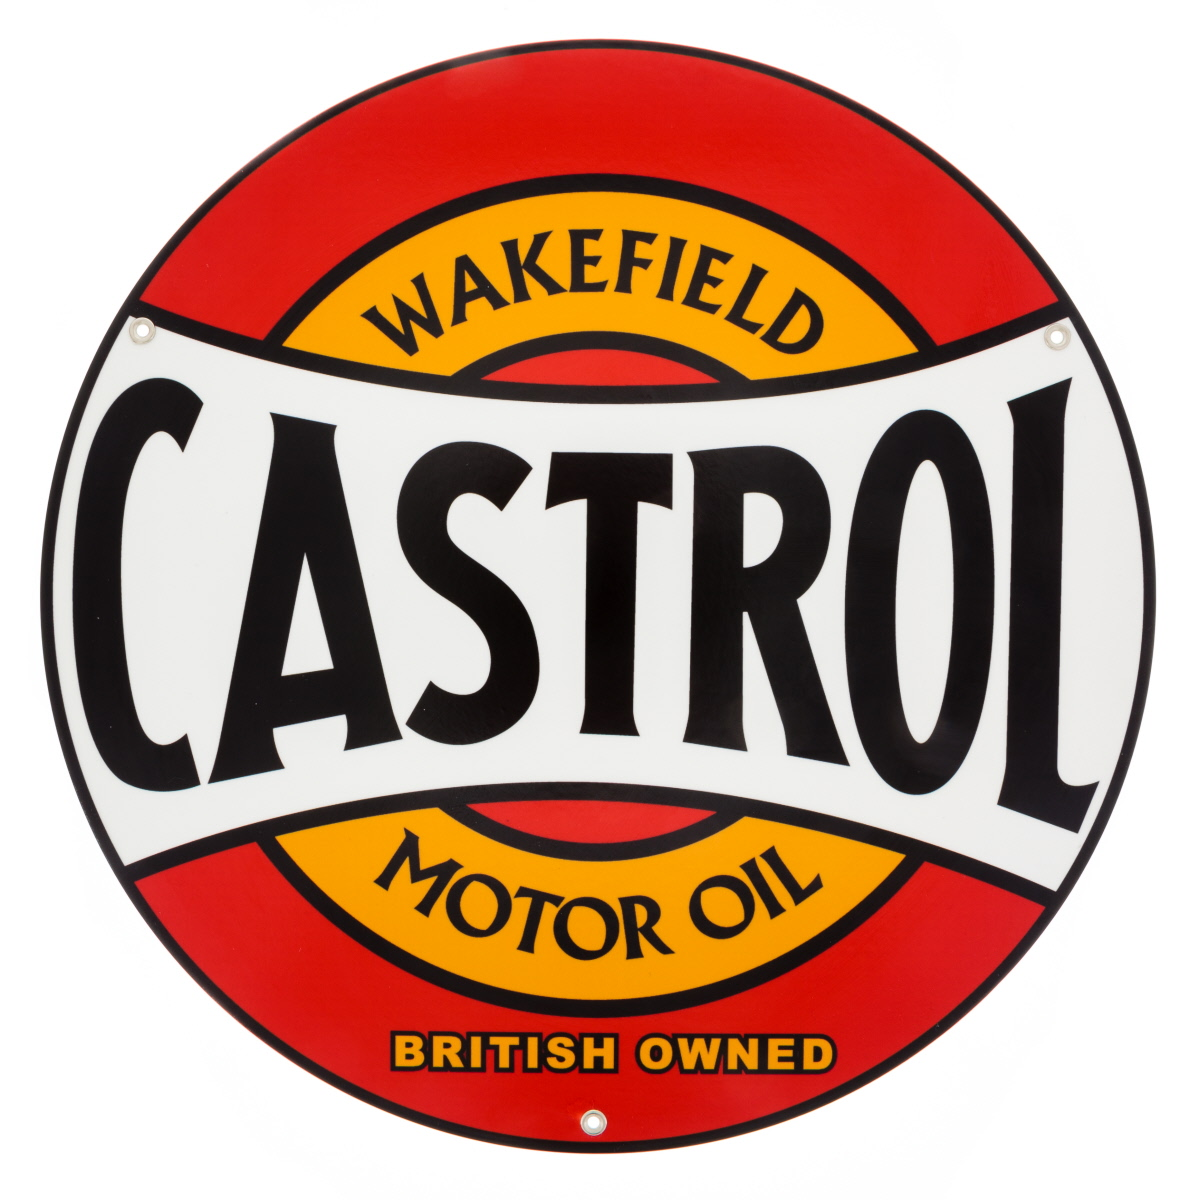 castrol wakefield motor oil metal sign gas reproduction